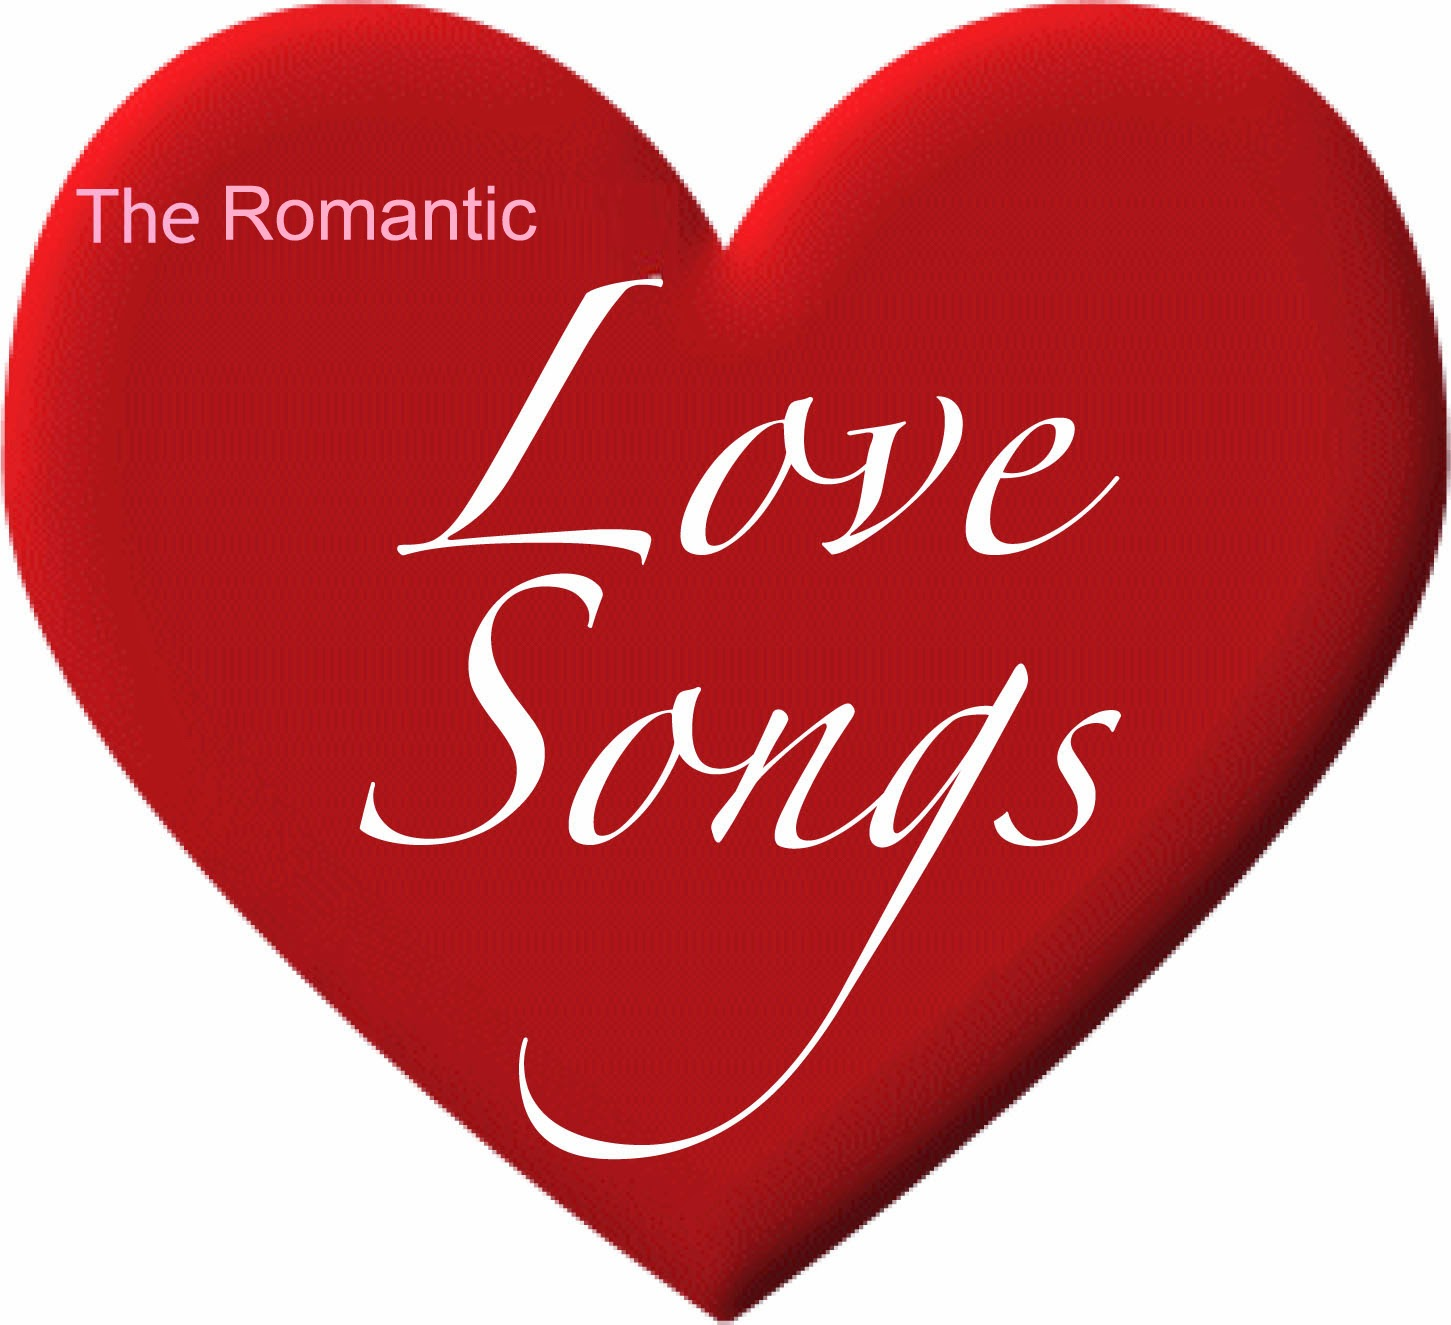 music n songs 2014 latest top new romantic love songs 2014 list. Black Bedroom Furniture Sets. Home Design Ideas